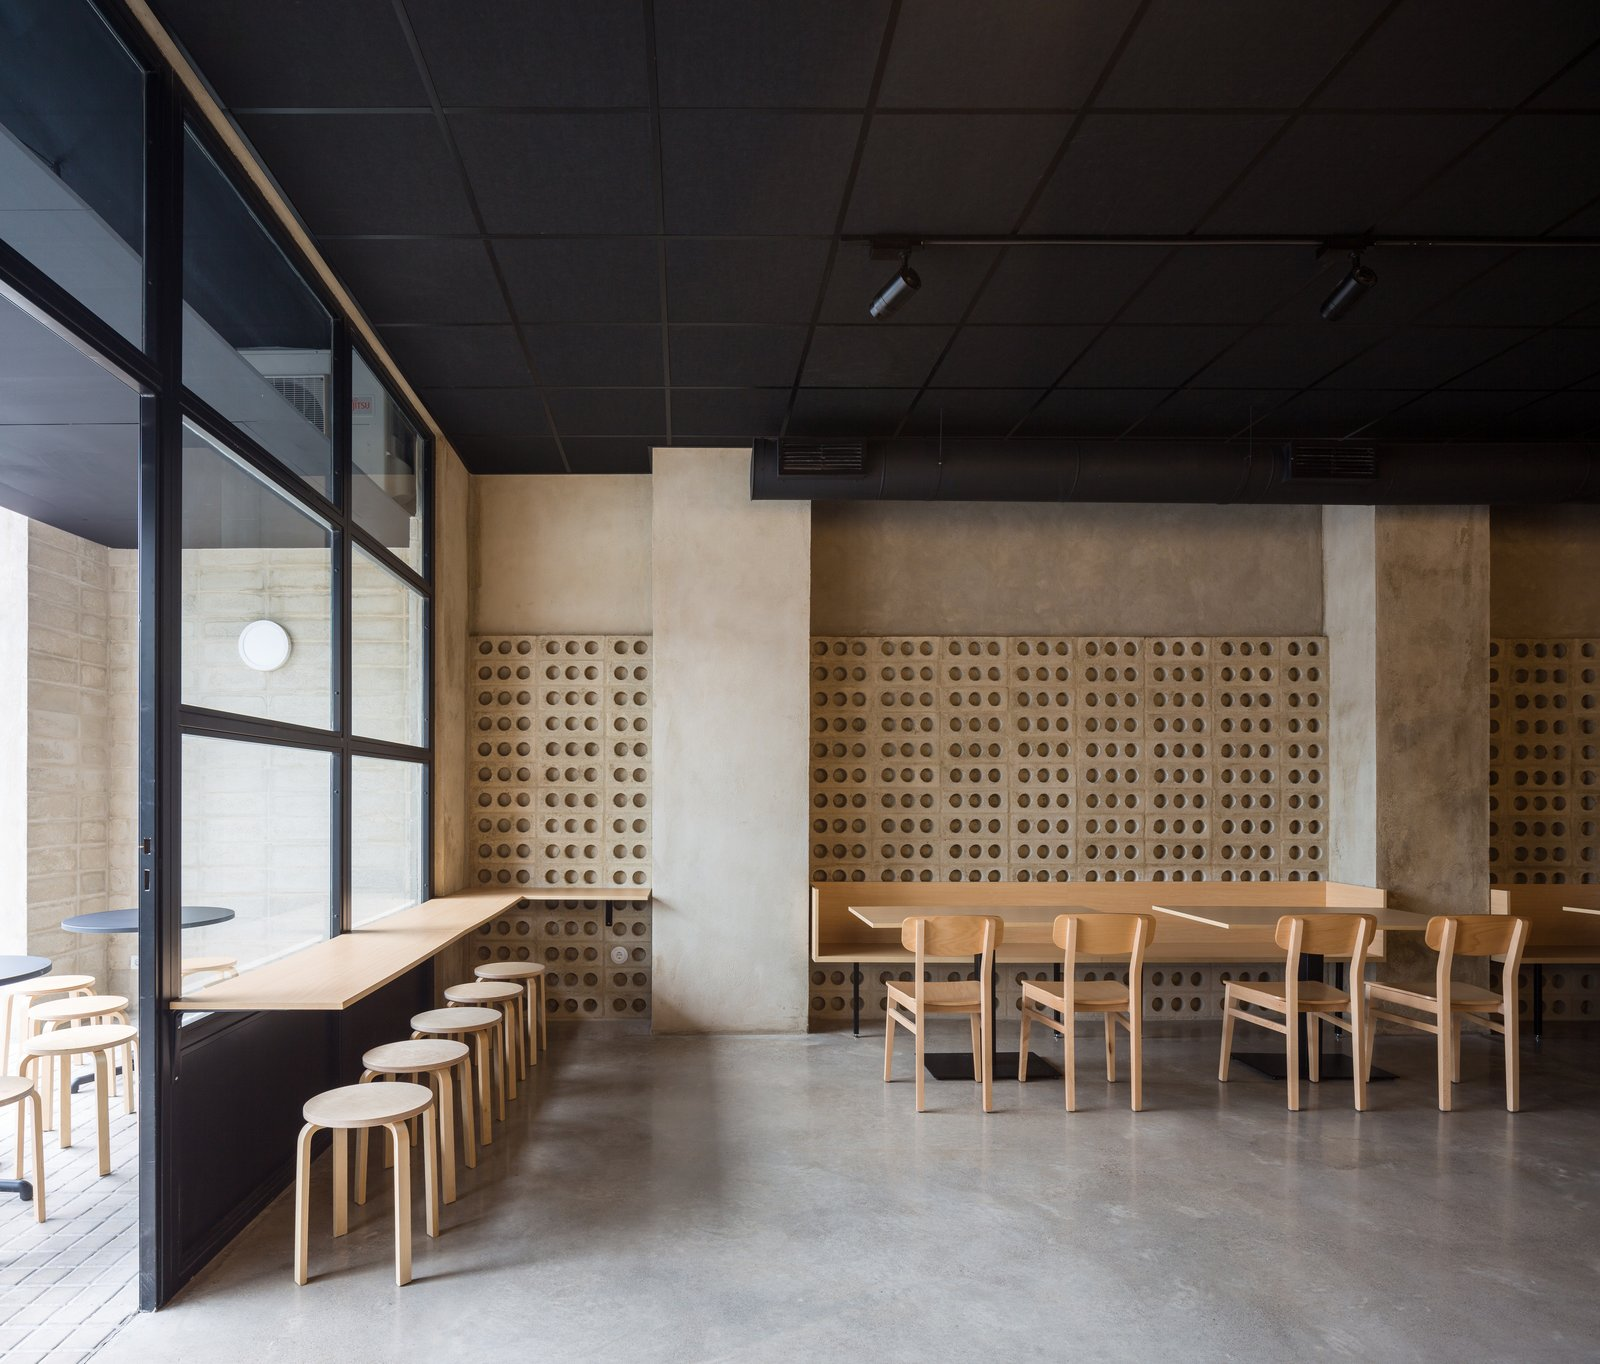 Dining Room, Concrete Floor, Table, Bench, Chair, Track Lighting, Wall Lighting, and Stools Casual dining area.  IMOOD Restaurant